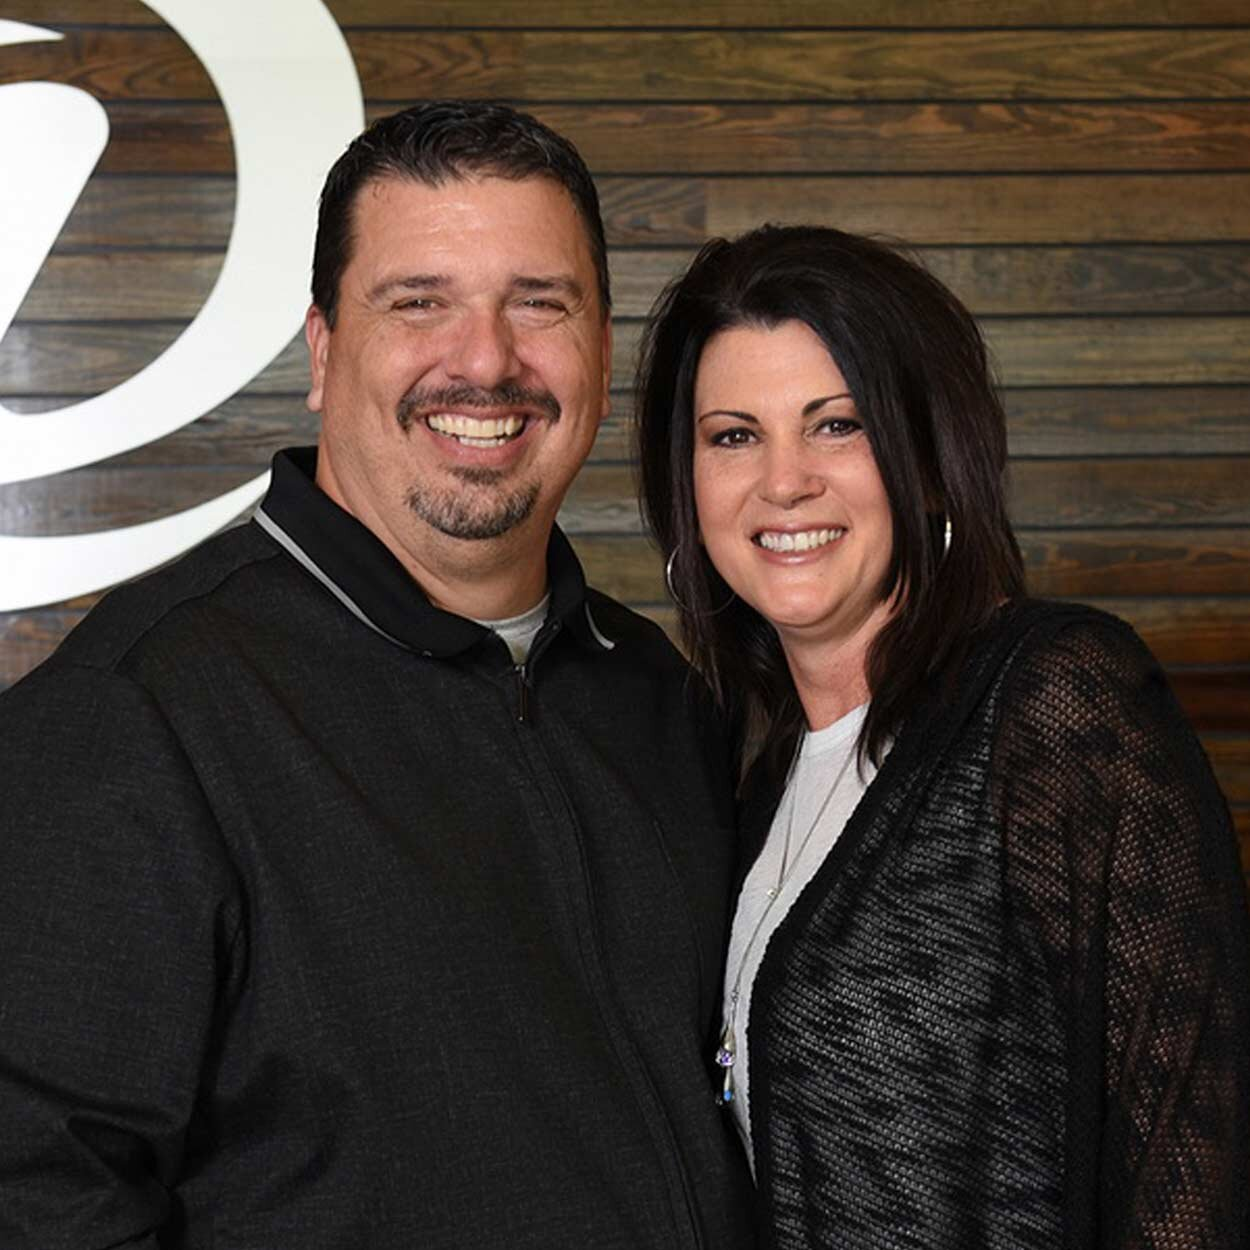 Pastors Wayne & Ginger Sheppard - LEAD PASTORSPastors Wayne and Ginger Sheppard have been in full-time ministry for 28 years. They served as student pastors for many of those years and are now the lead pastors at Destination Church in Saraland, Alabama. Arriving in Saraland in 2011, they have seen Destination Church grow from 120 to over 1500. Pastor Wayne has spoken at many conferences and churches sharing his methods of growth and his love for the local church. He believes everyone has a destiny and his passion is helping people discover their personal calling in life. Pastor Wayne and Ginger have two children. Greyson, is a recent graduate of Highlands College and serves at DC with her husband Dylan. Their son, Tyler, is in his second year of college and serves at DC.Email Wayne / Email Ginger